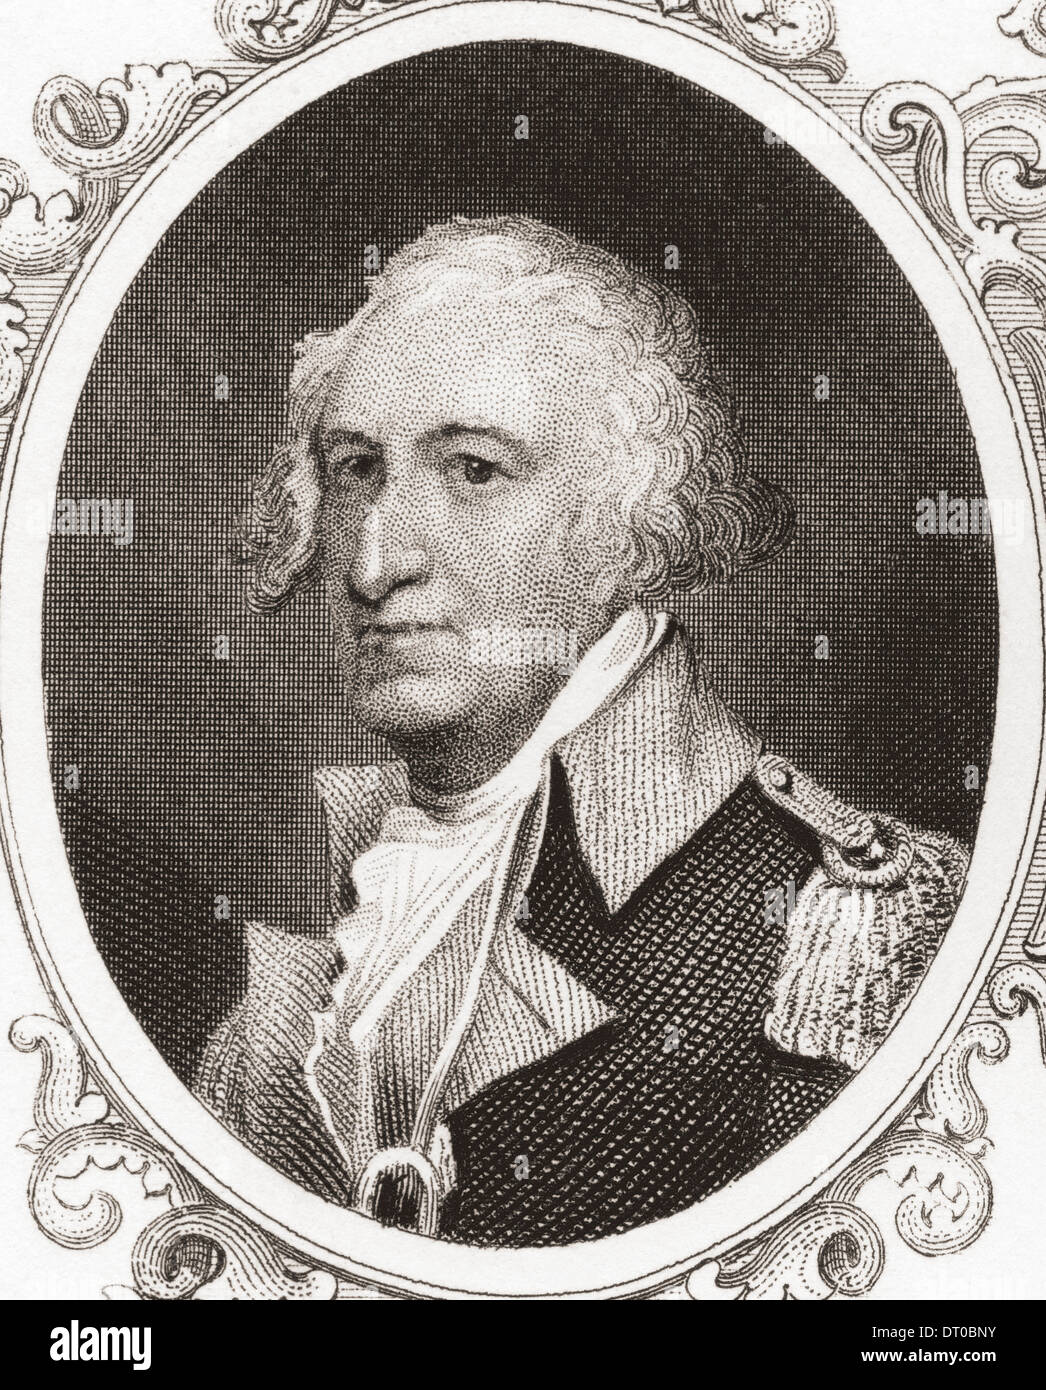 Horatio Lloyd Gates, 1727 – 1806. Retired British soldier who served as an American general during the Revolutionary War. - Stock Image